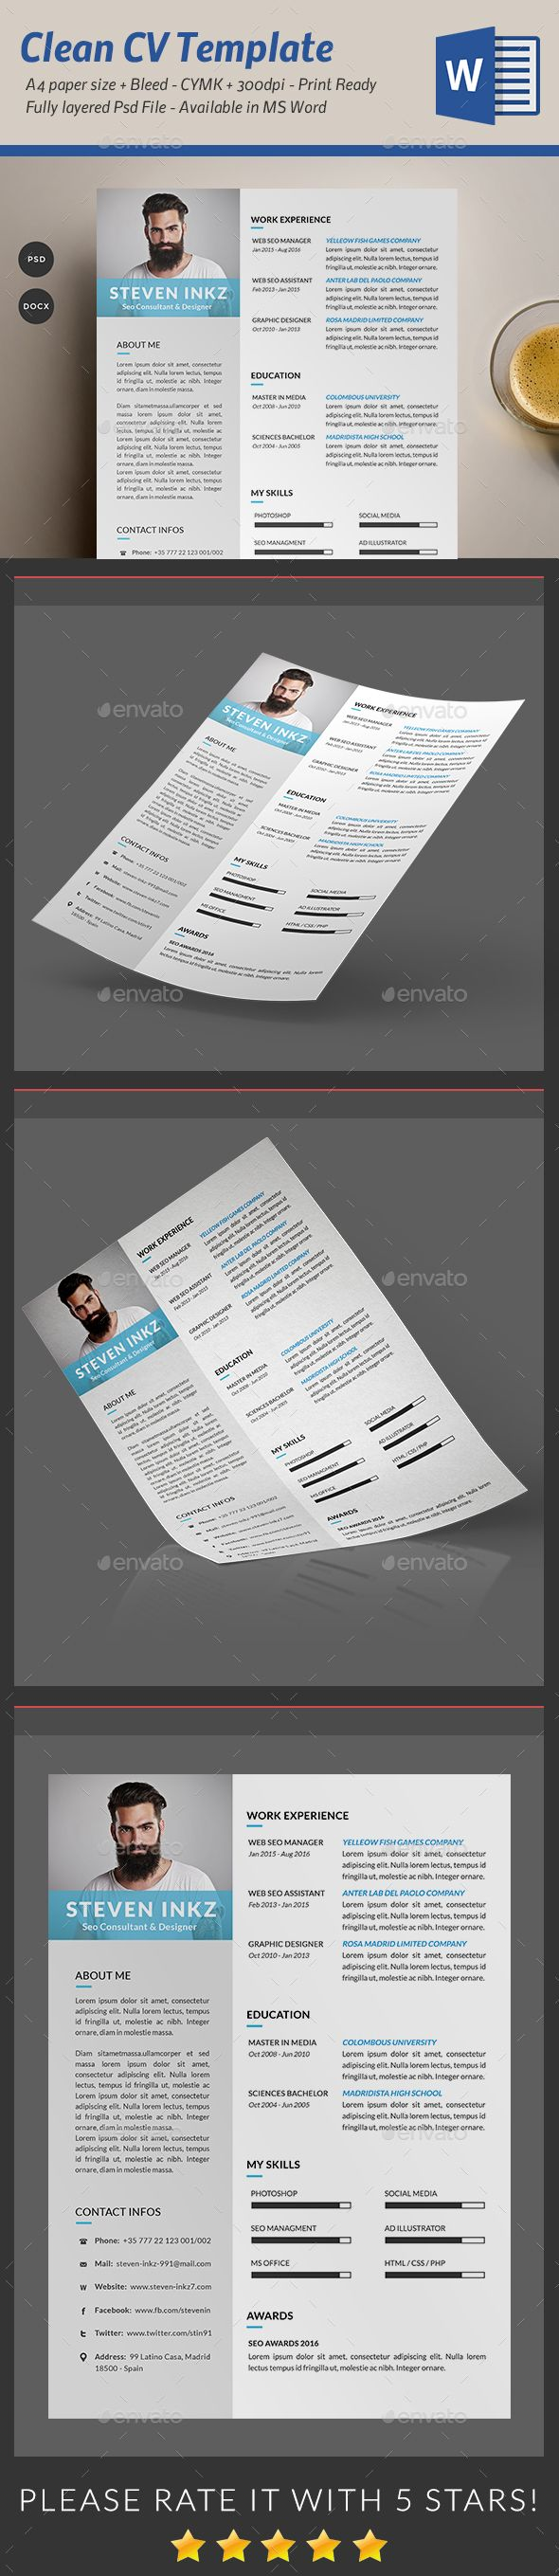 10 best For the kid images on Pinterest | Acting resume template ...